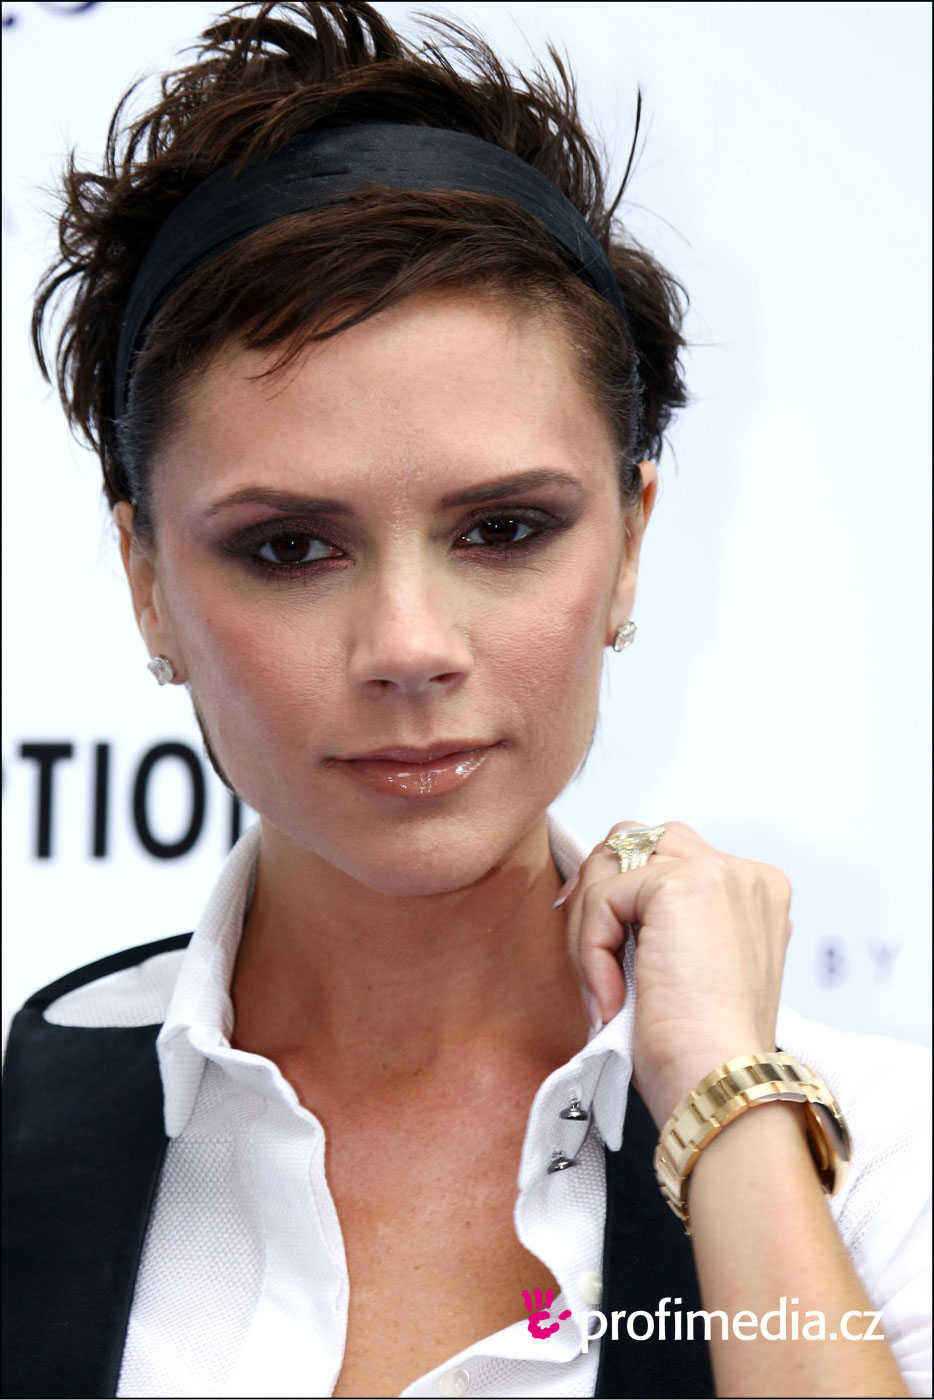 victoria beckham frisur zum ausprobieren in efrisuren. Black Bedroom Furniture Sets. Home Design Ideas